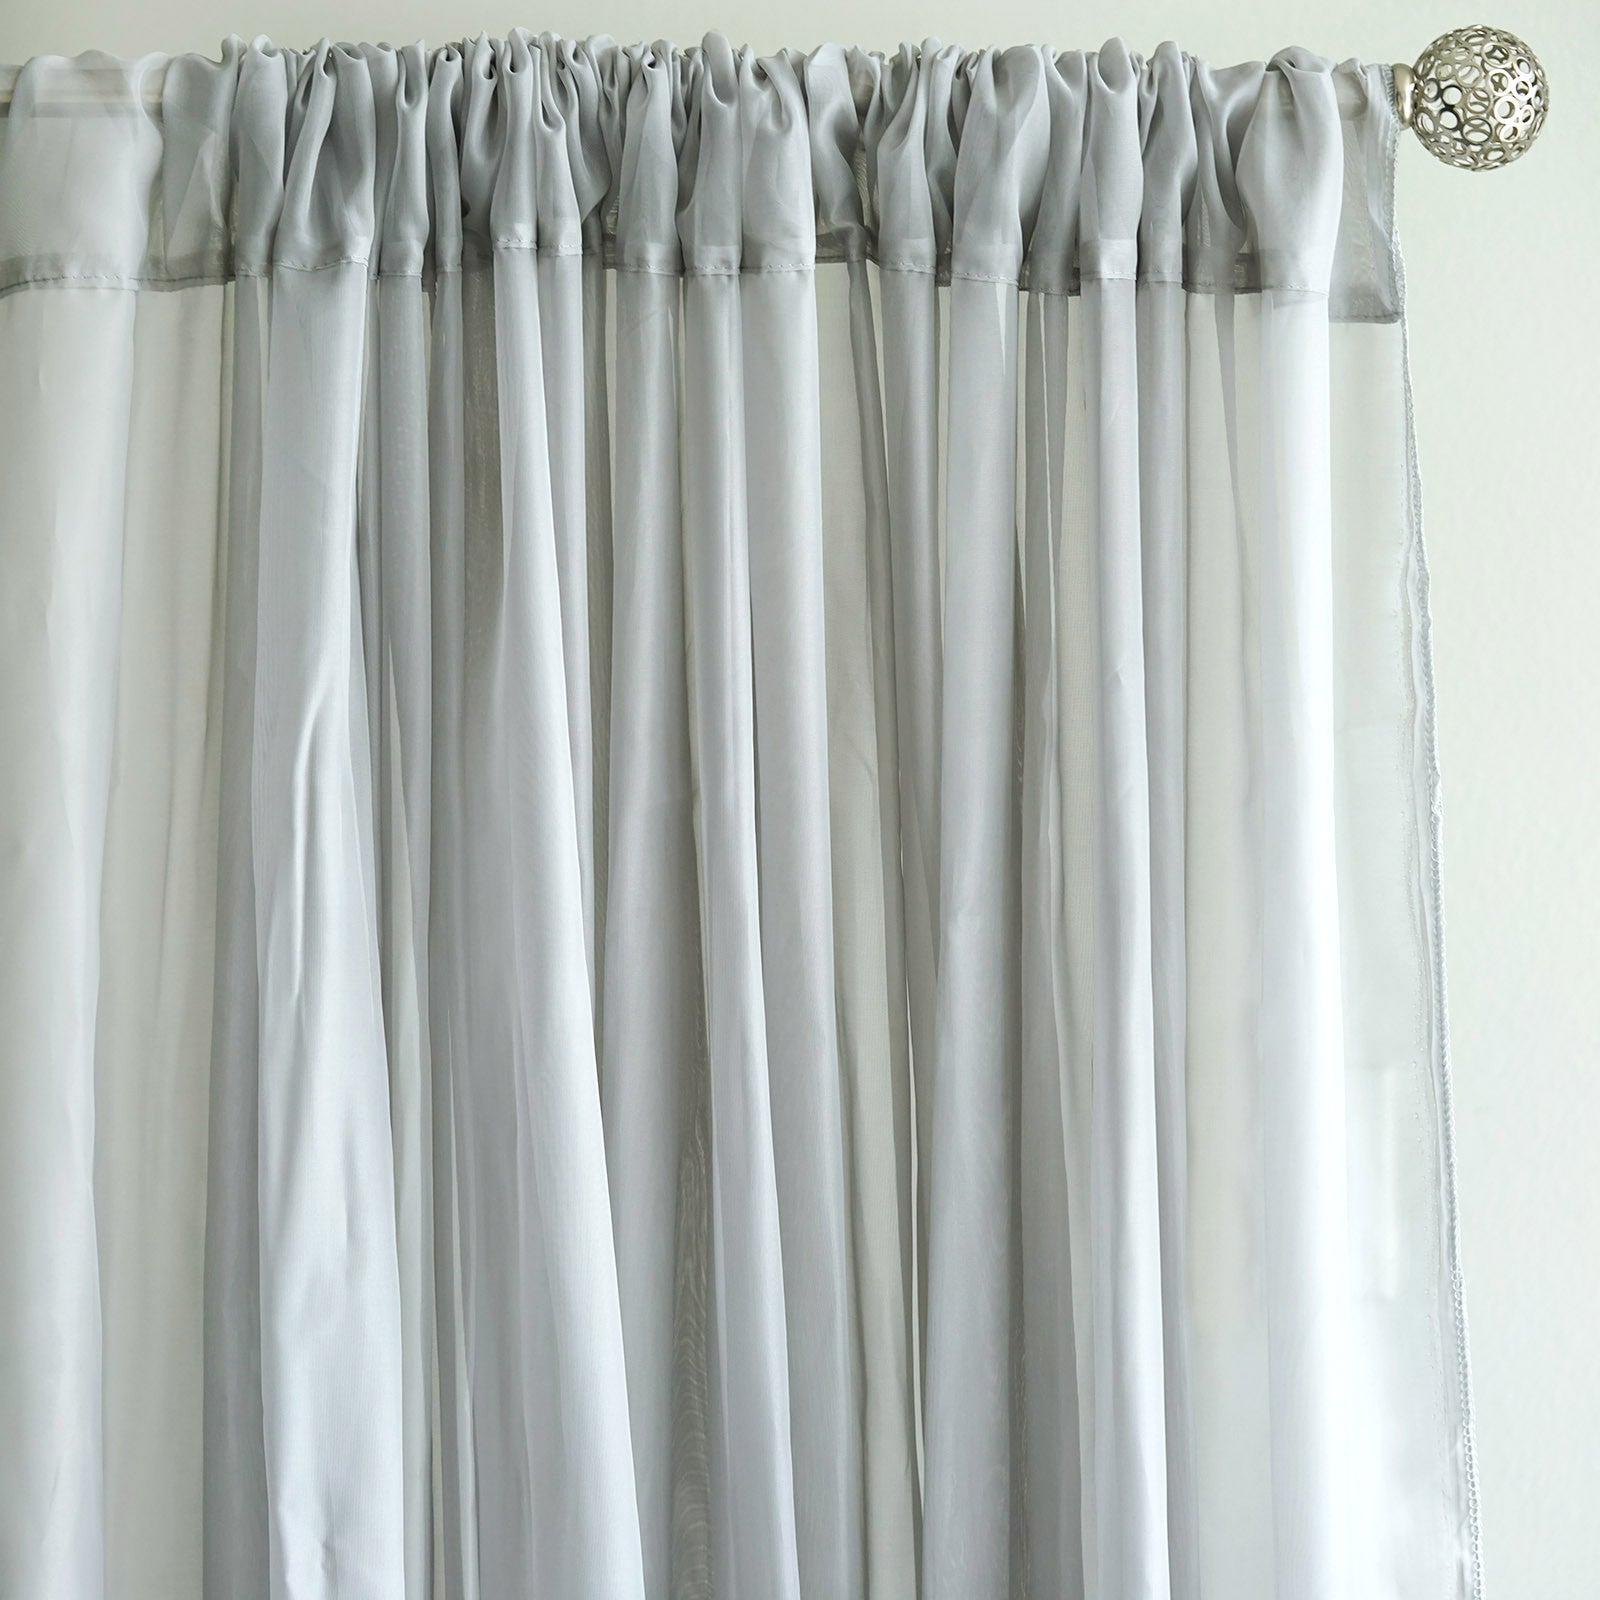 10FT Fire Retardant Silver Sheer Curtain Panel Backdrops With Rod Pockets